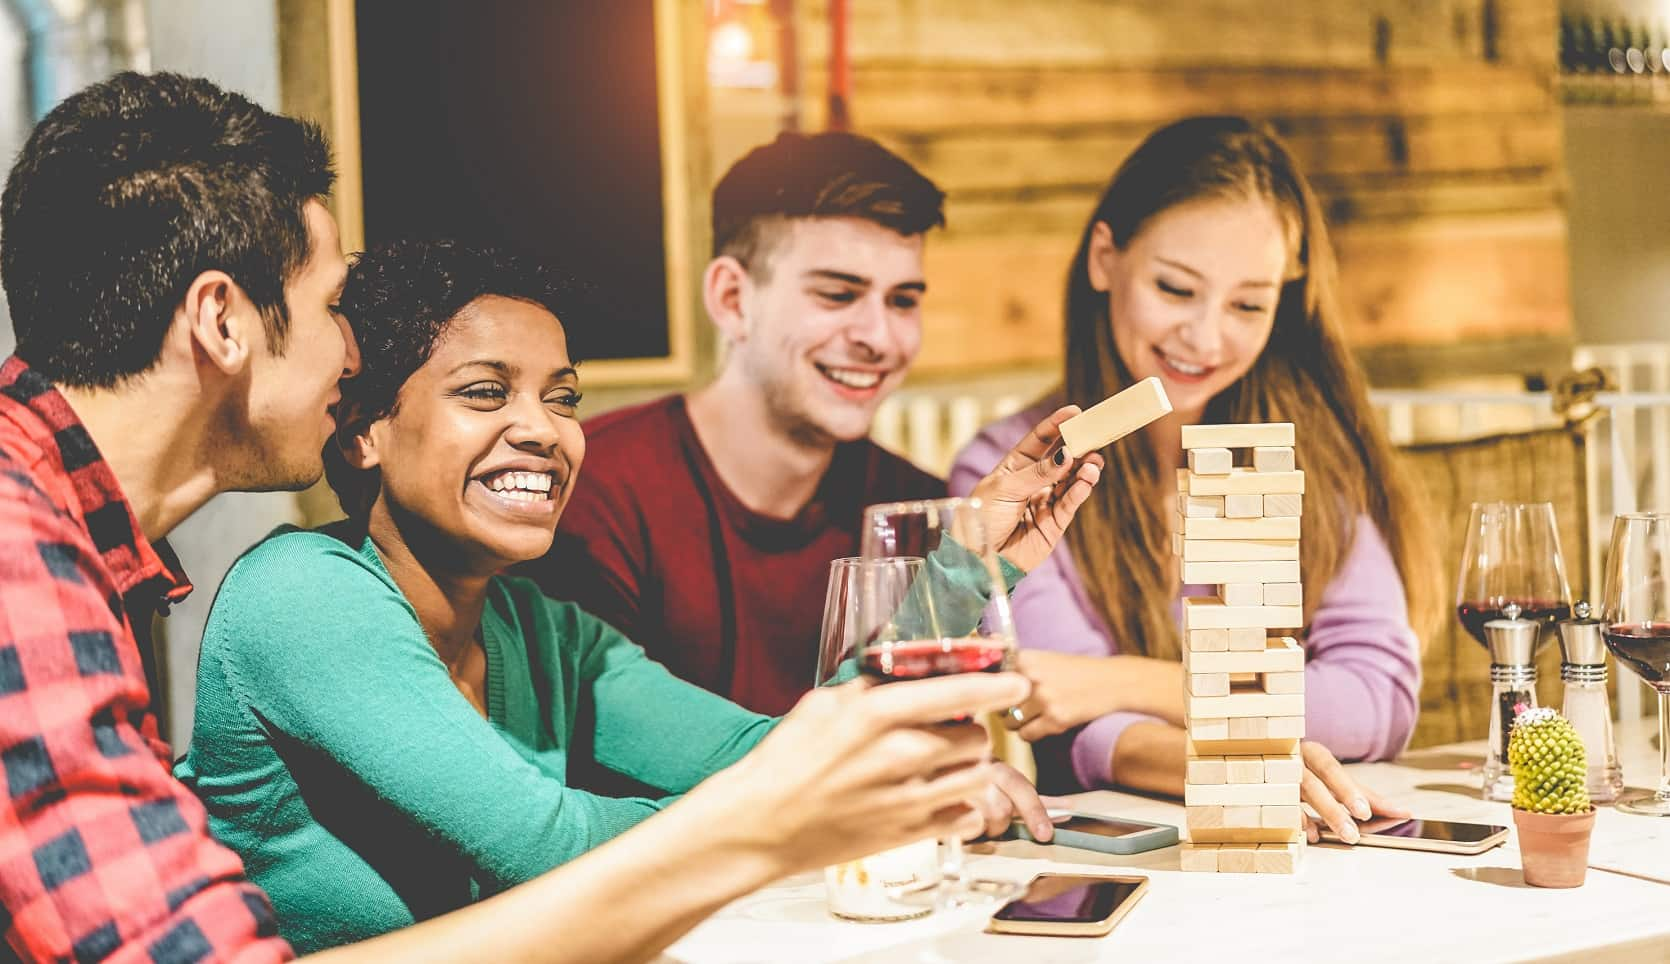 5 Tips For Setting Up A Fun Entertainment Space. Loud party at the board games